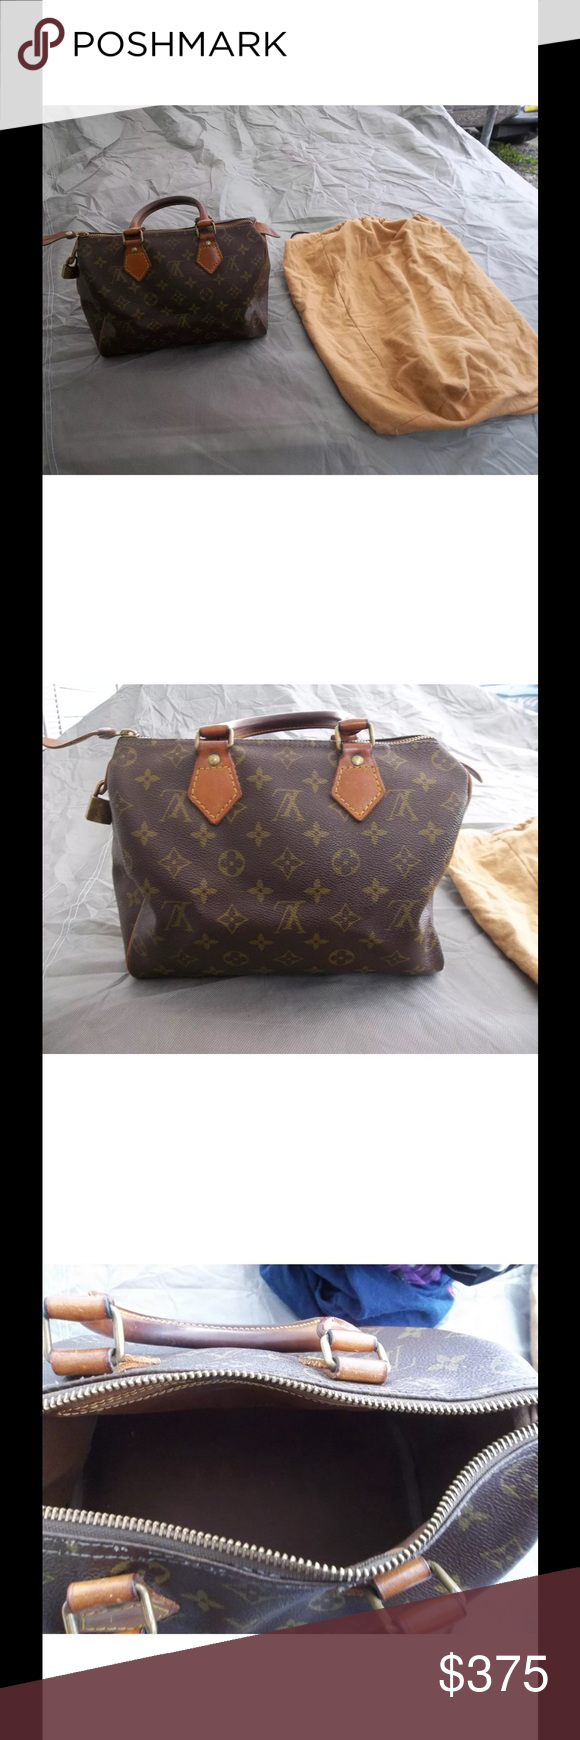 🌹Authentic LV speedy 25 LV speedy 25 Preowned in good condition see photos comes with dust bag & cosmetic case ( peeling inside) outside great condition 💥This is a bundle💥 Louis Vuitton Bags Mini Bags